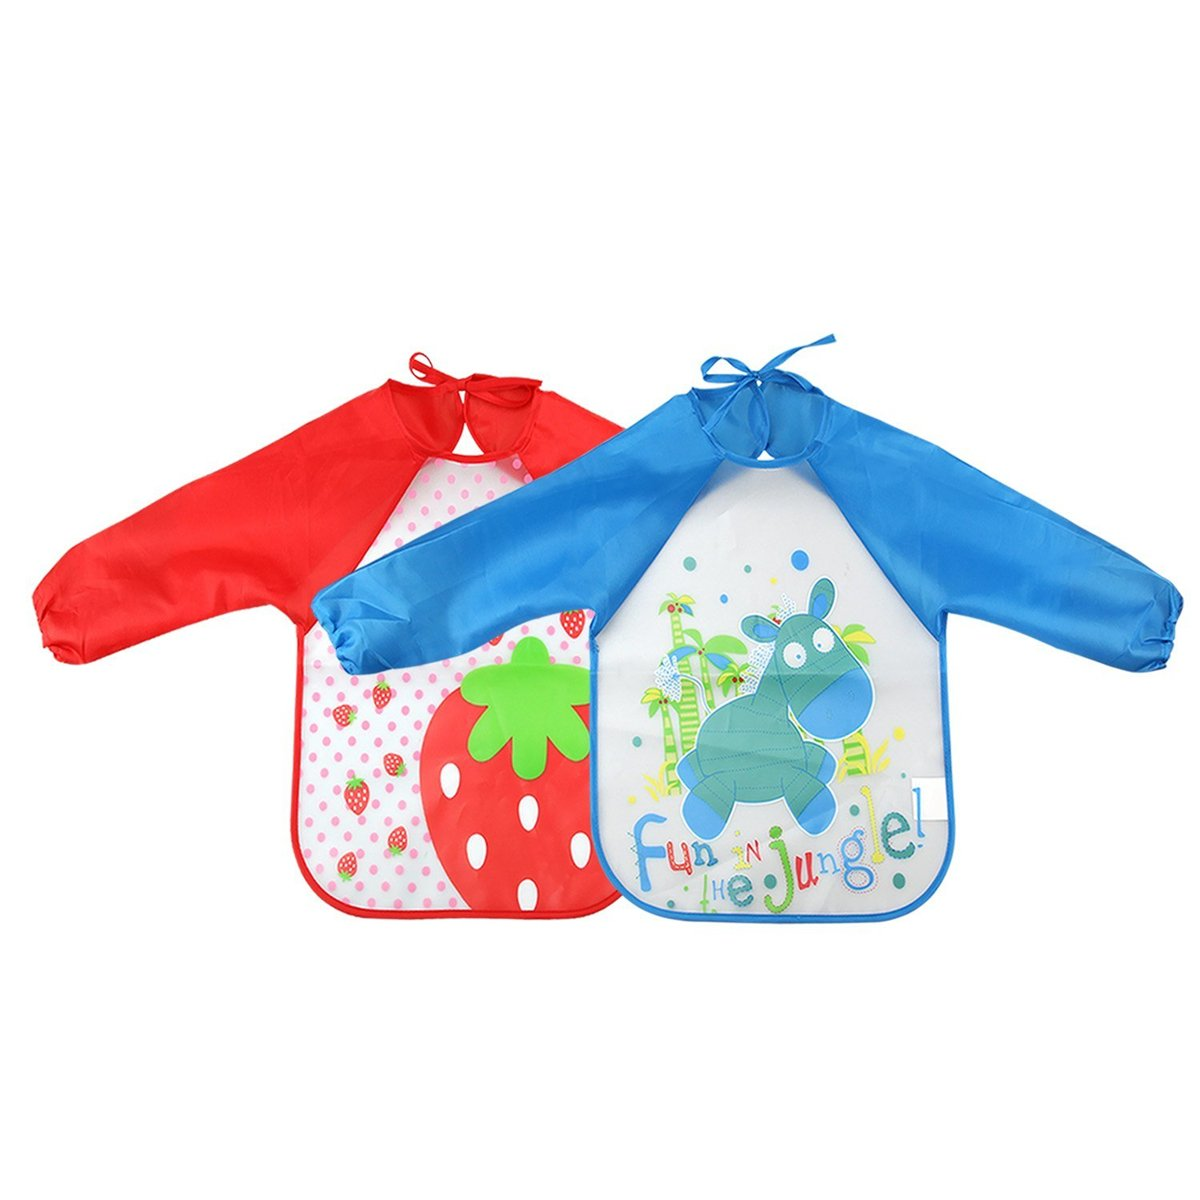 DierCosy Kids Painting Aprons Waterproof Art Smock with Long Sleeves for Toddler PHTL